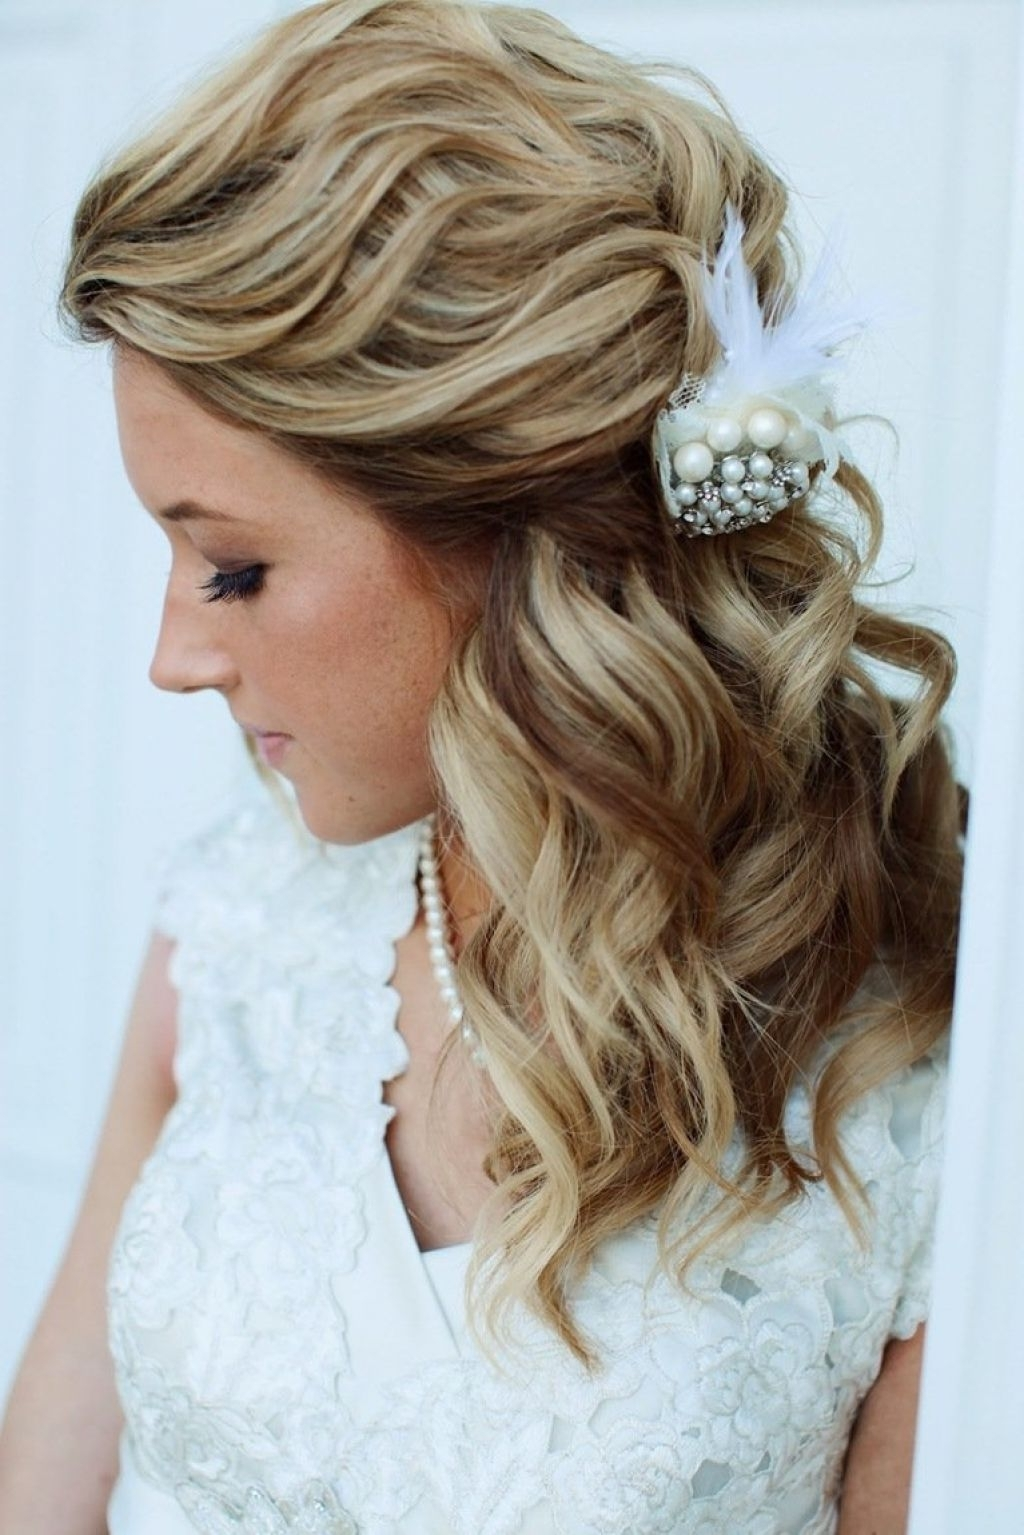 Newest Wedding Hairstyles For Mid Length Hair With Fringe With Impeccable Medium Length Hair Wedding Hairstyles Ideas Medium Length (View 13 of 15)